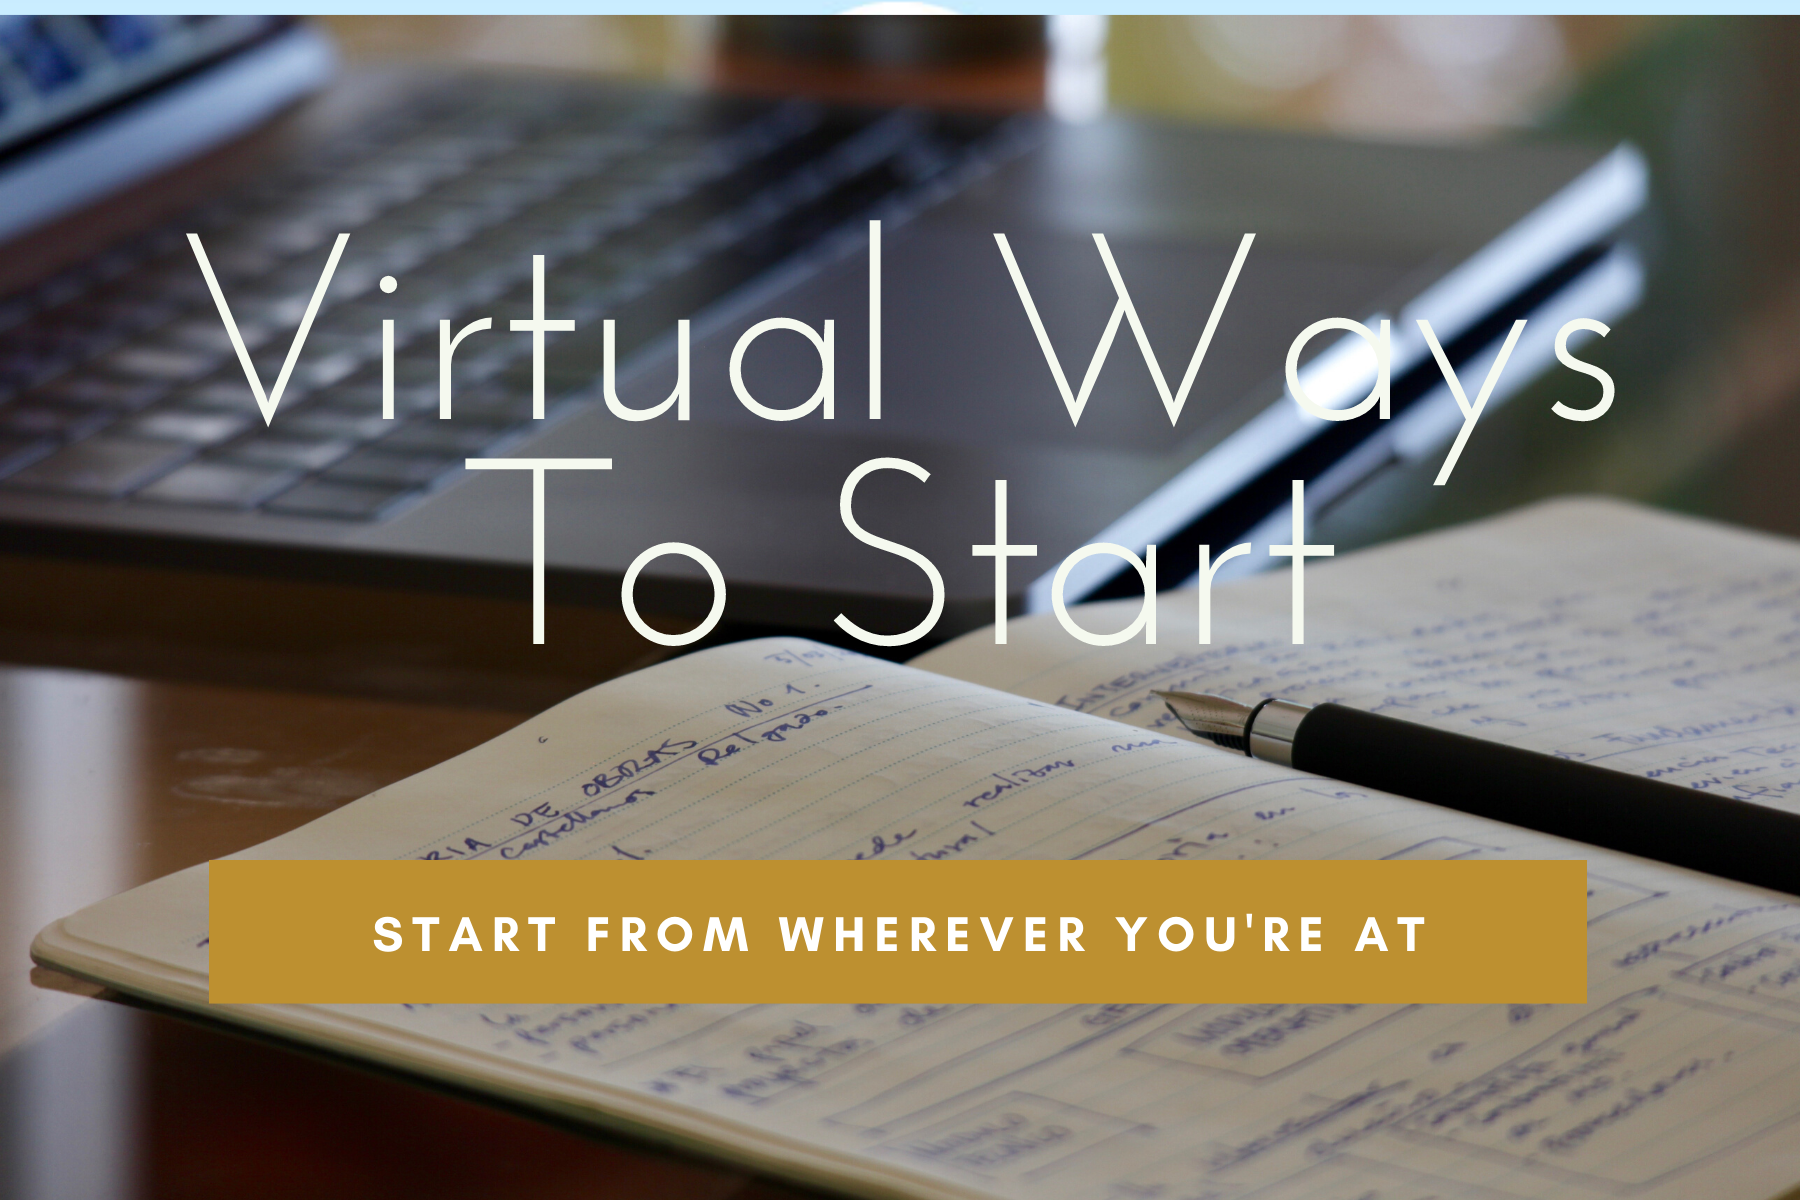 Virtual Ways To Start (6)